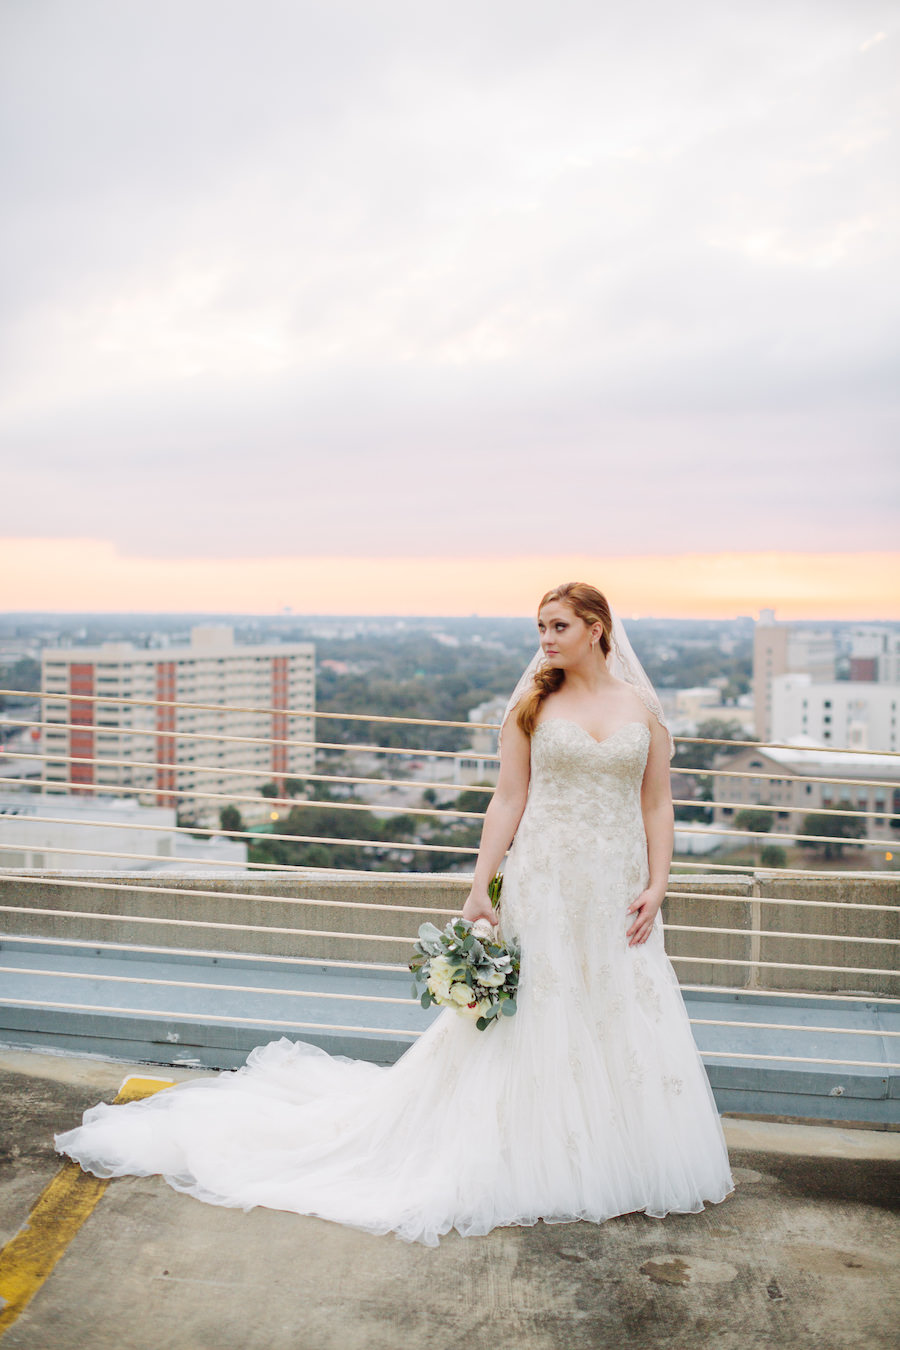 Outdoor Tampa Bride in Ivory, Beaded Sweetheart Trumpet Sophia Tolli Gown Wedding Portrait | The Tampa Club Wedding Venue